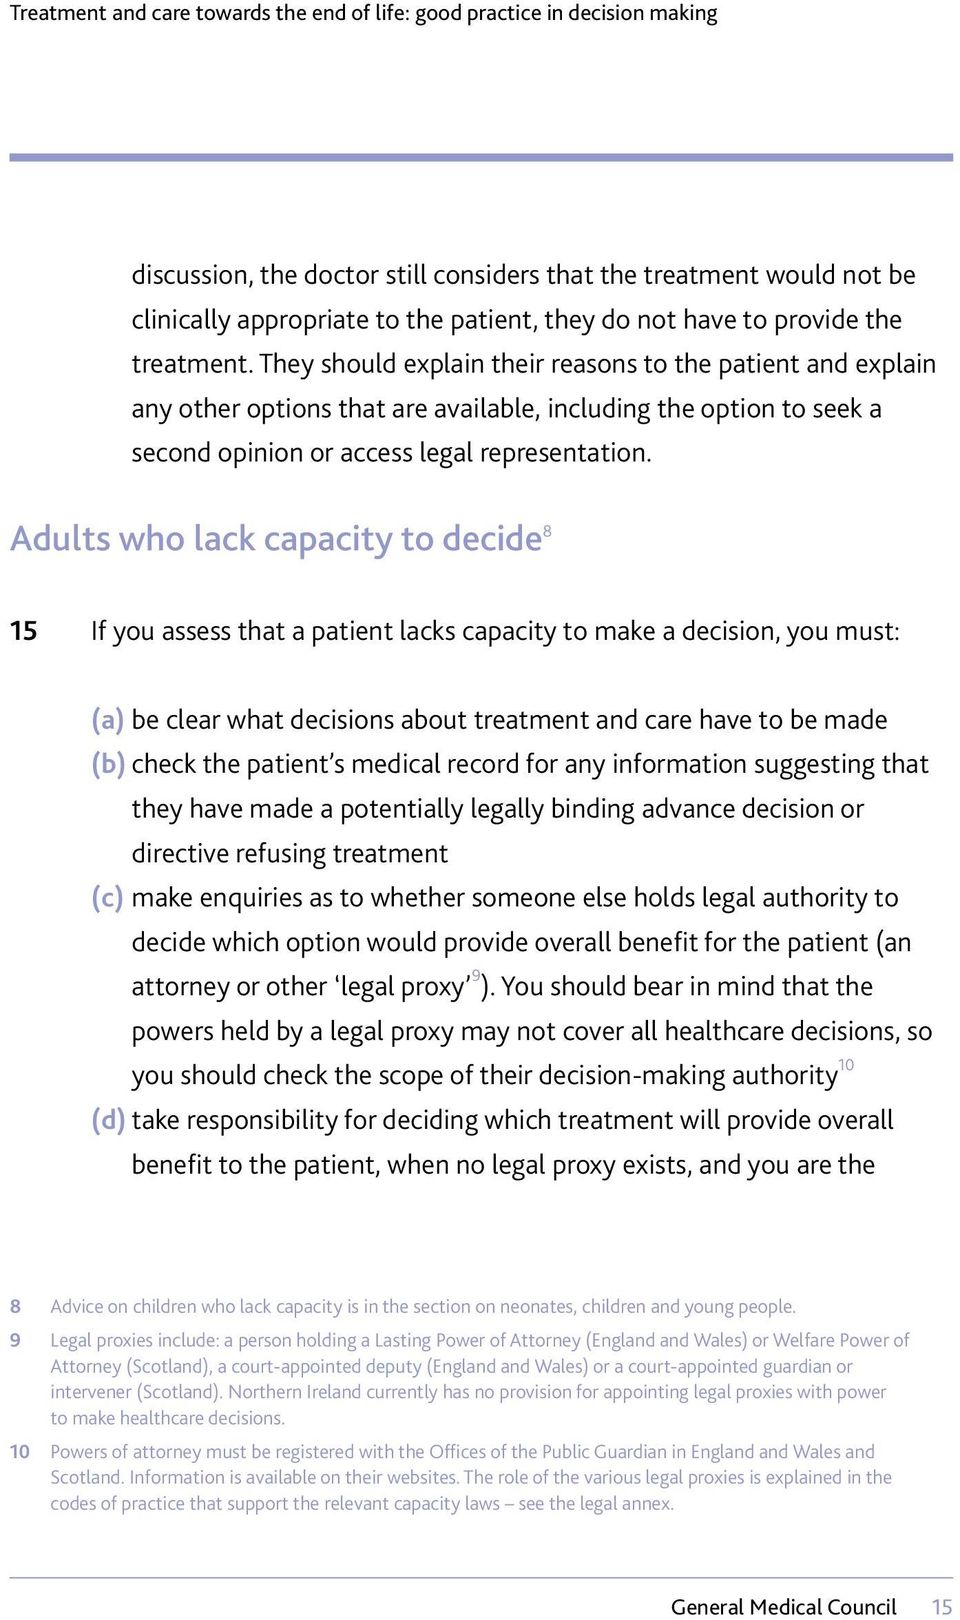 Adults who lack capacity to decide 8 15 If you assess that a patient lacks capacity to make a decision, you must: (a) be clear what decisions about treatment and care have to be made (b) check the